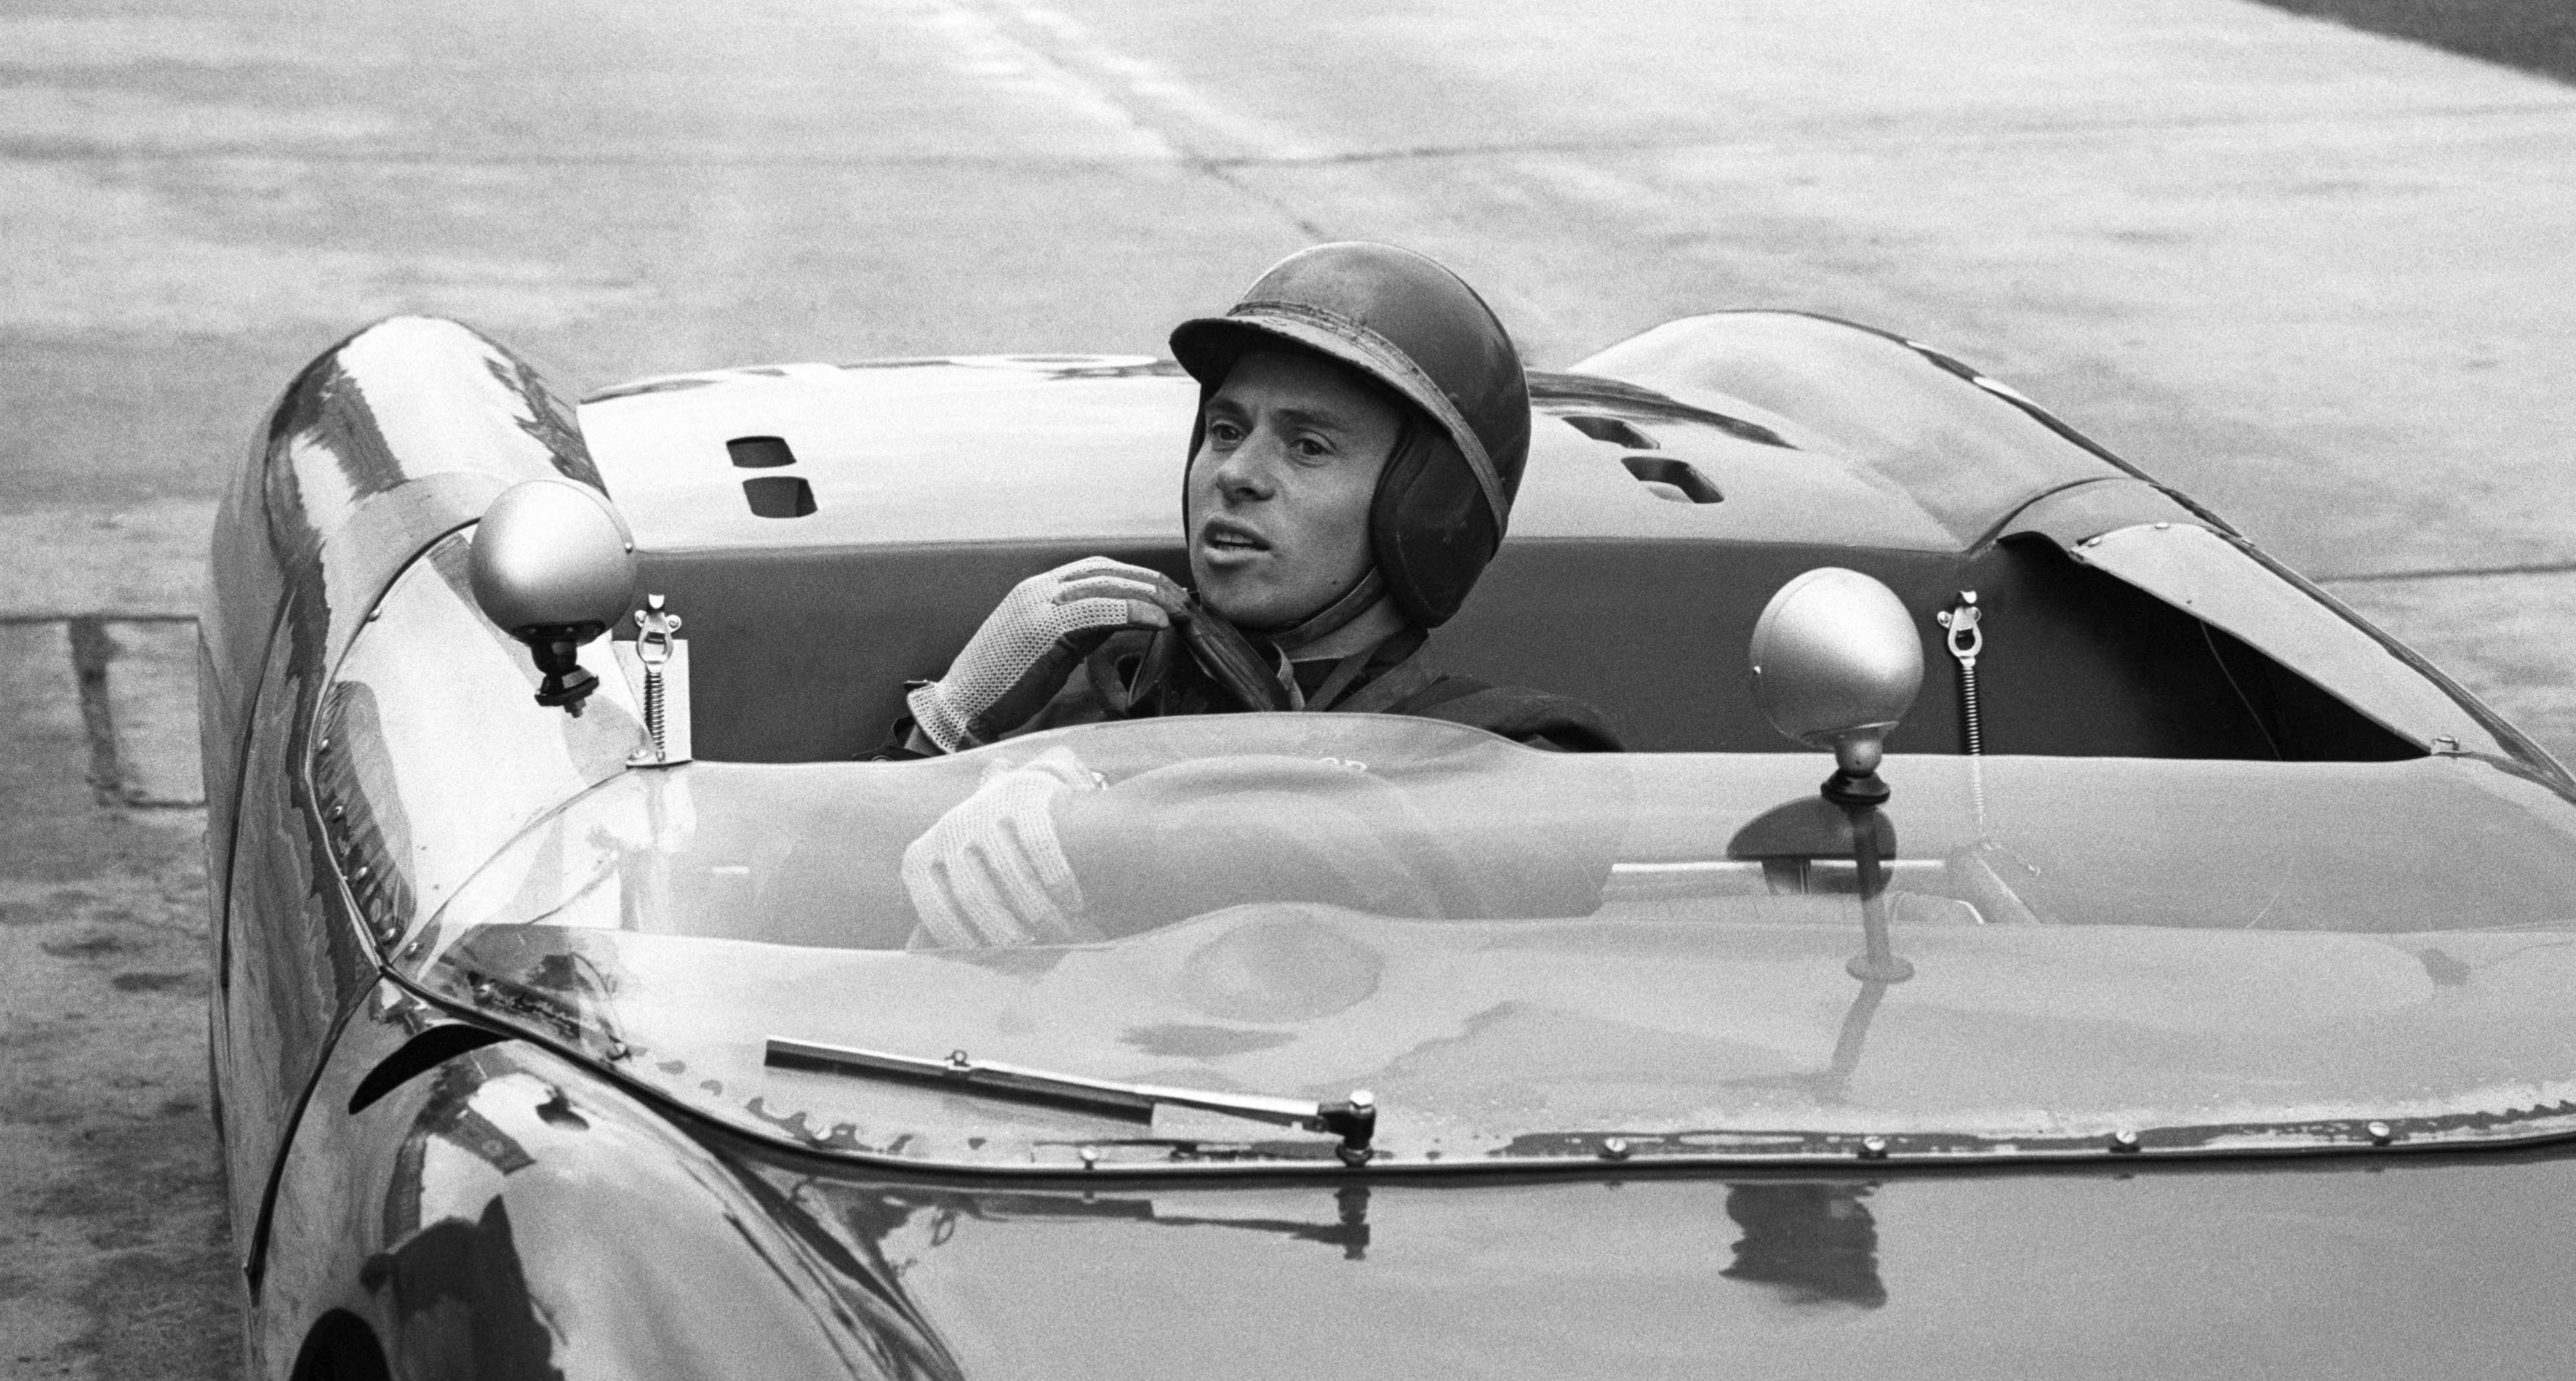 im Clark (GB) in pits with the Lotus 23 Ford, entered by Essex Racing Team, he retires soon in an accident after 11 laps of the 1000km race at the Nuerburgring in 1962